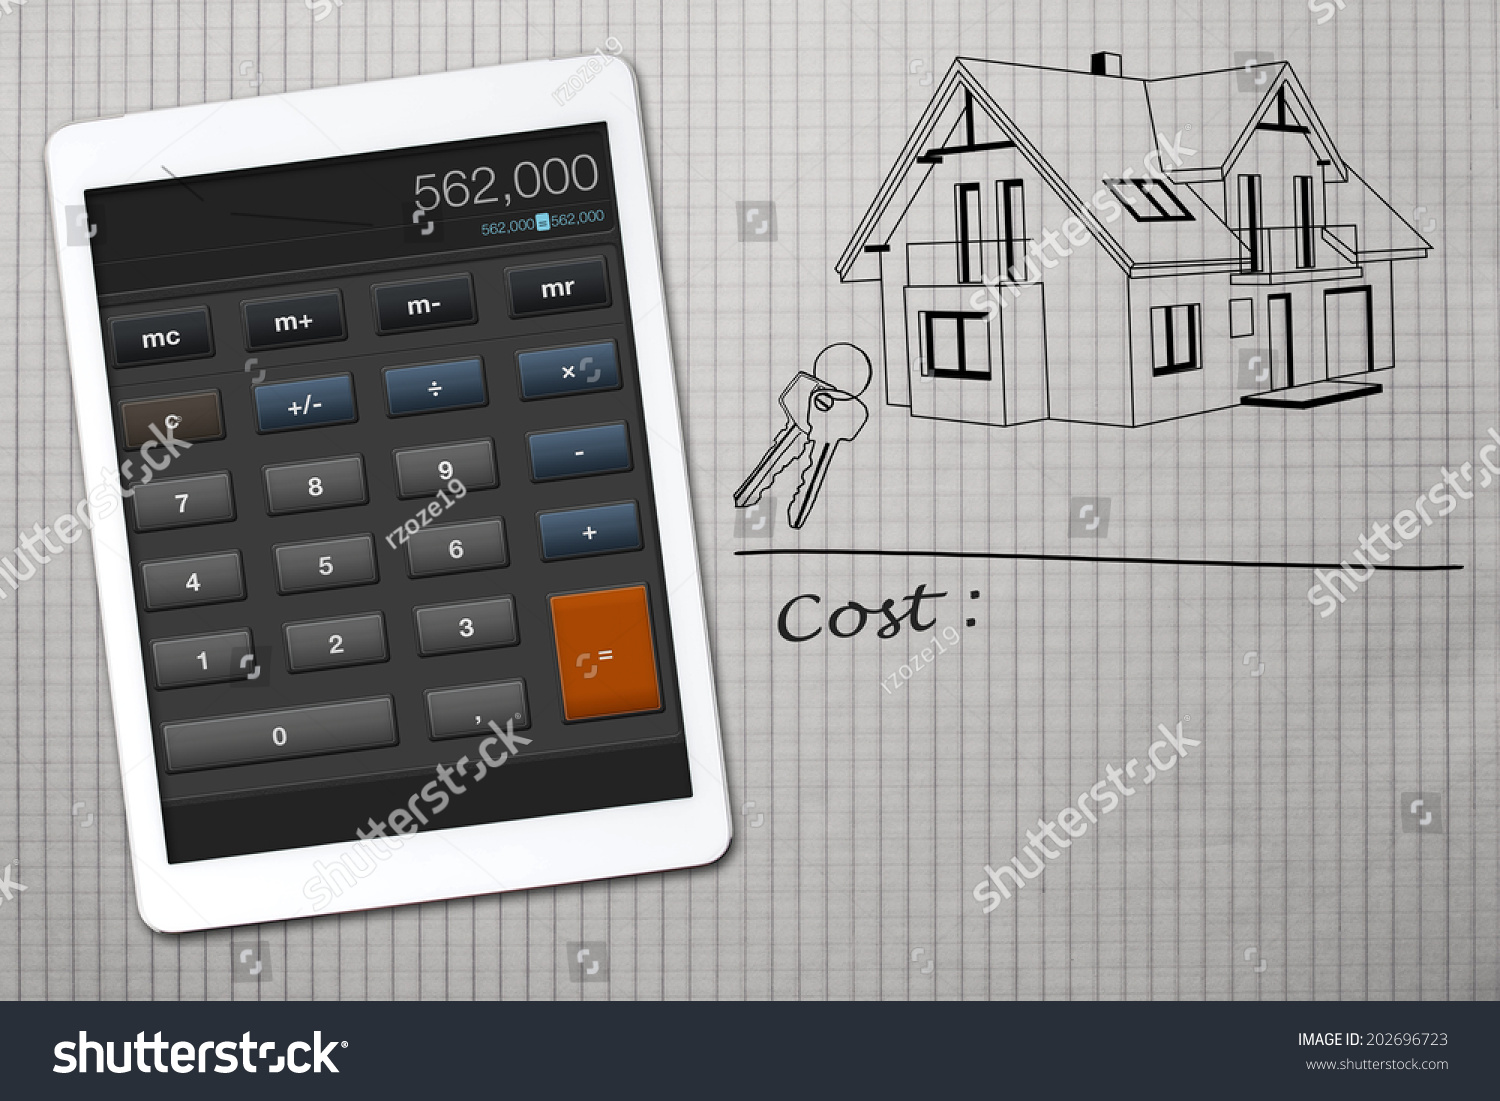 Home construction cost calculator stock photo 202696723 for Home construction costs calculator